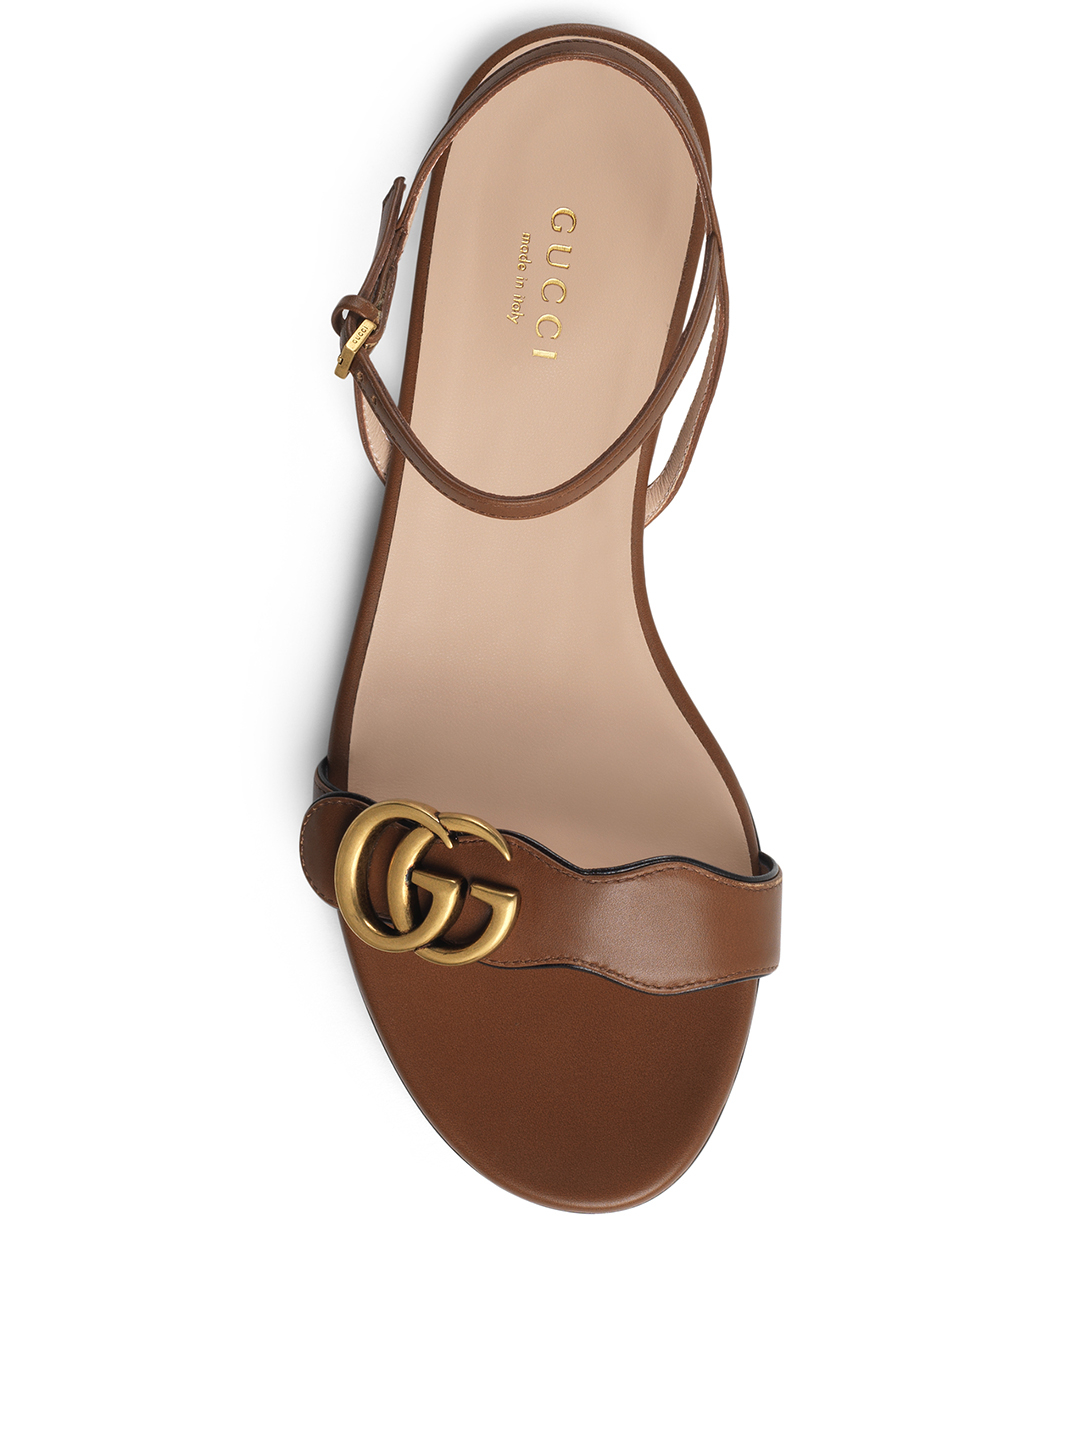 bb8d163e229 ... GUCCI Marmont Leather Sandals Women s Brown ...